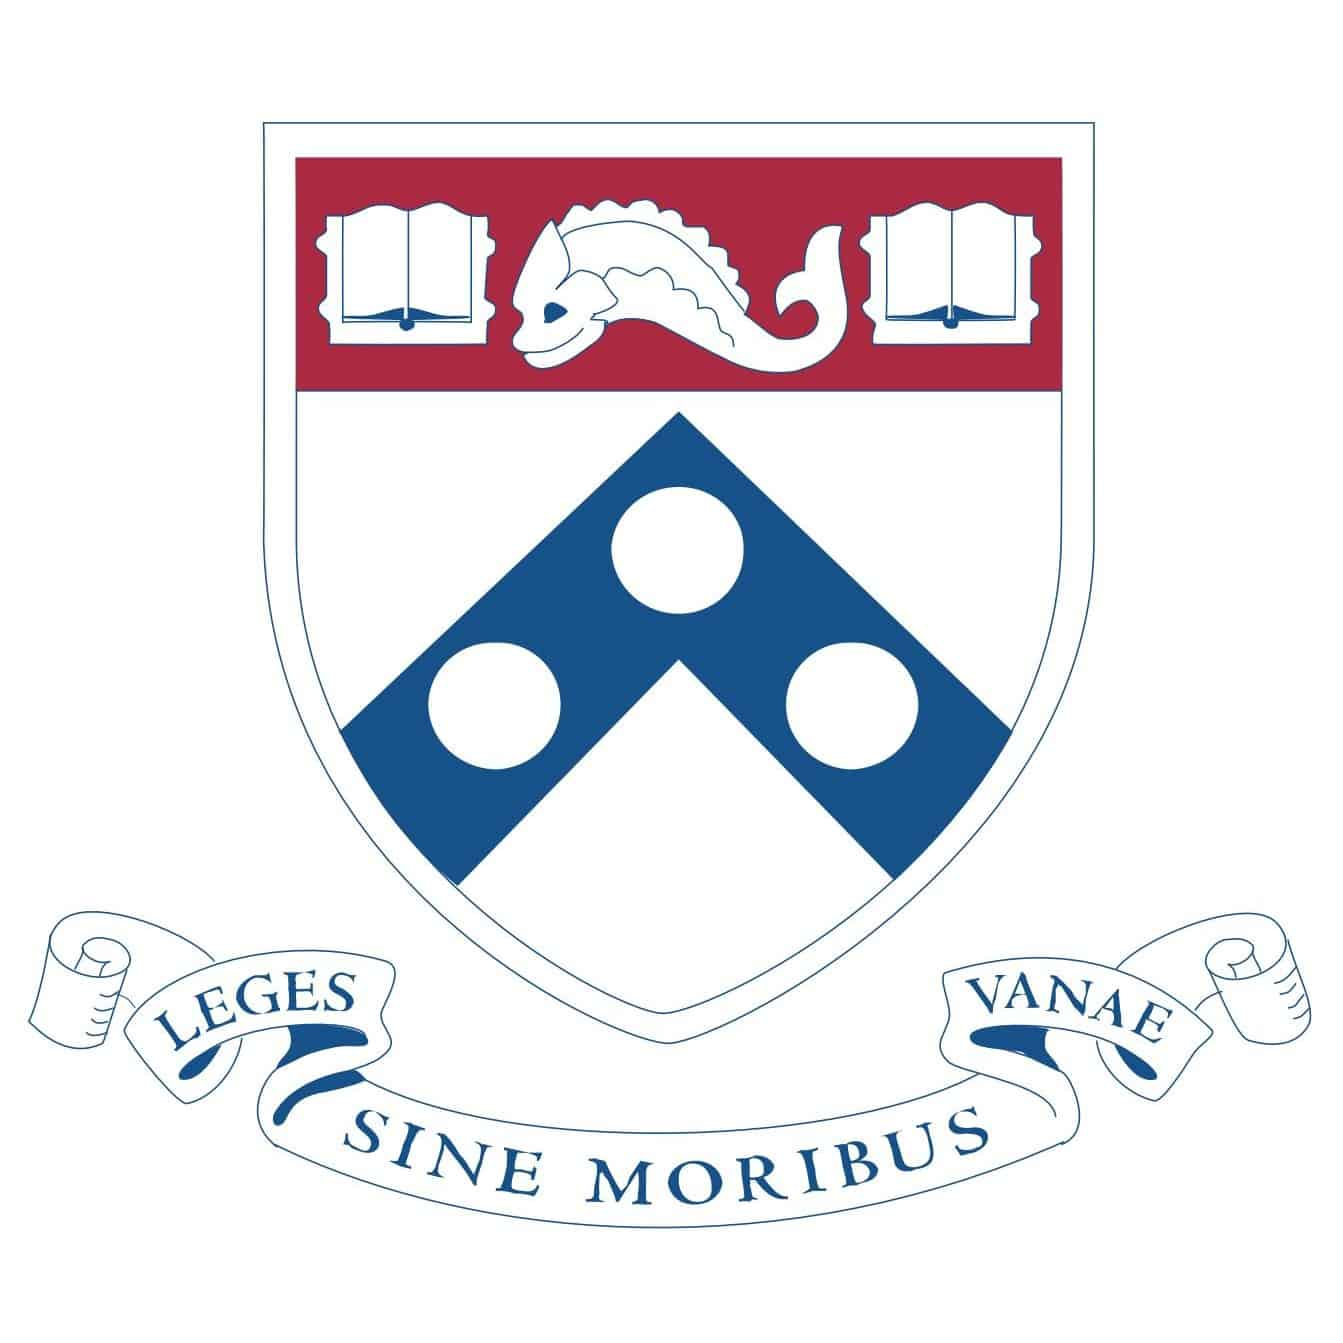 Penn Logo University of Pennsylvania Coat of Arms